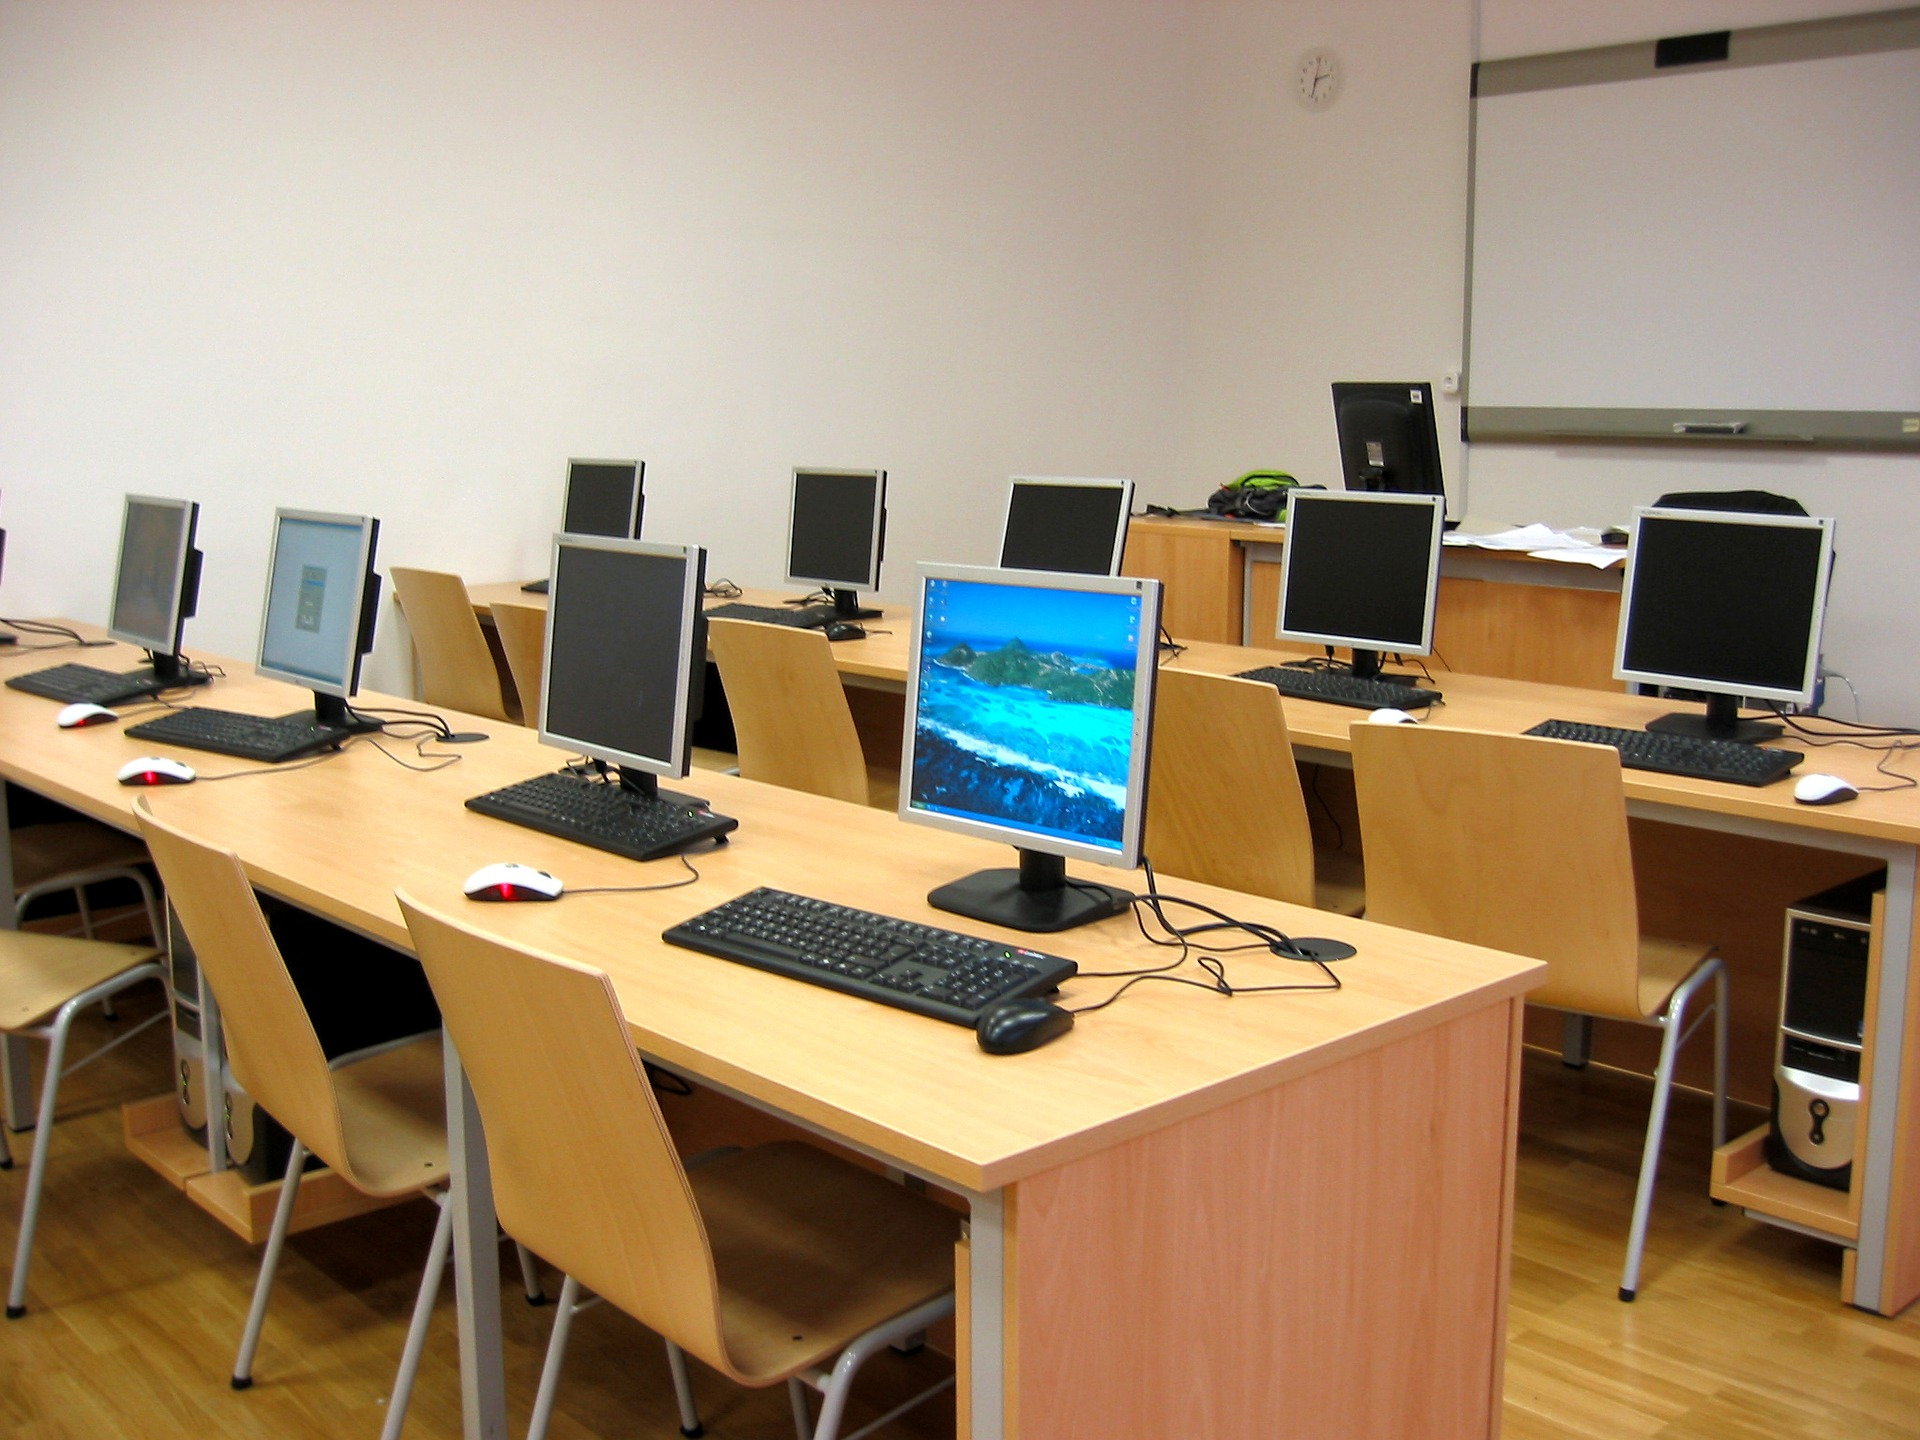 The positive impacts of ICT on education